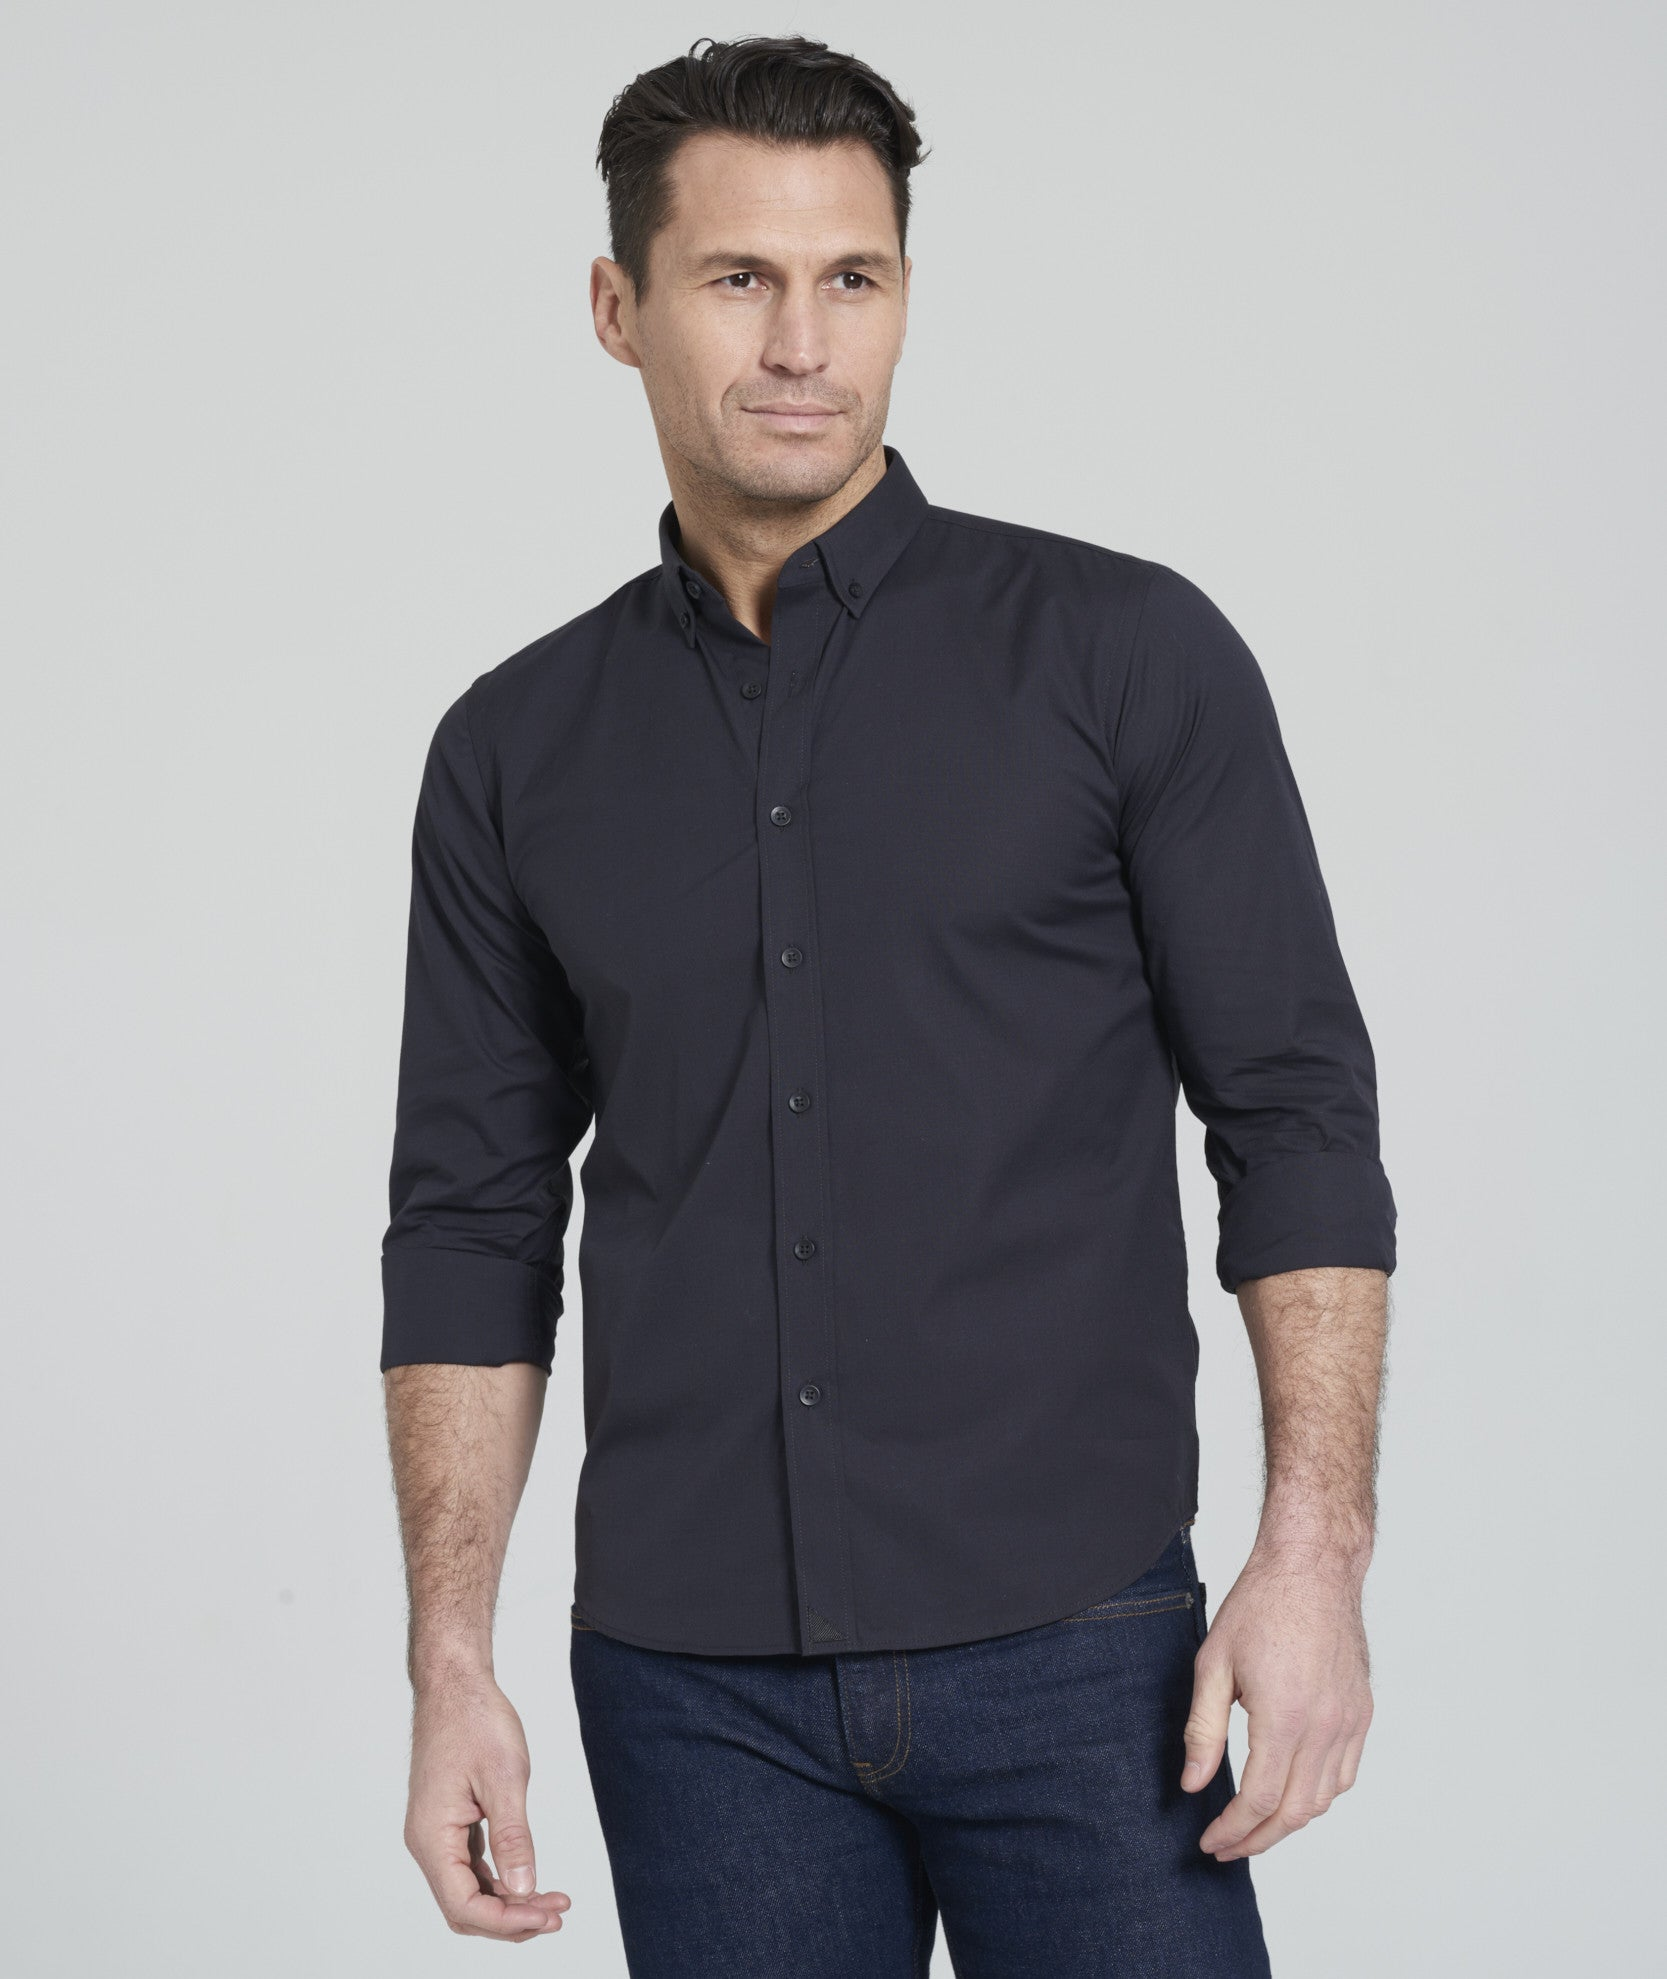 Carter With Black - Button Down Collar. fb-feed bb52049e09d3